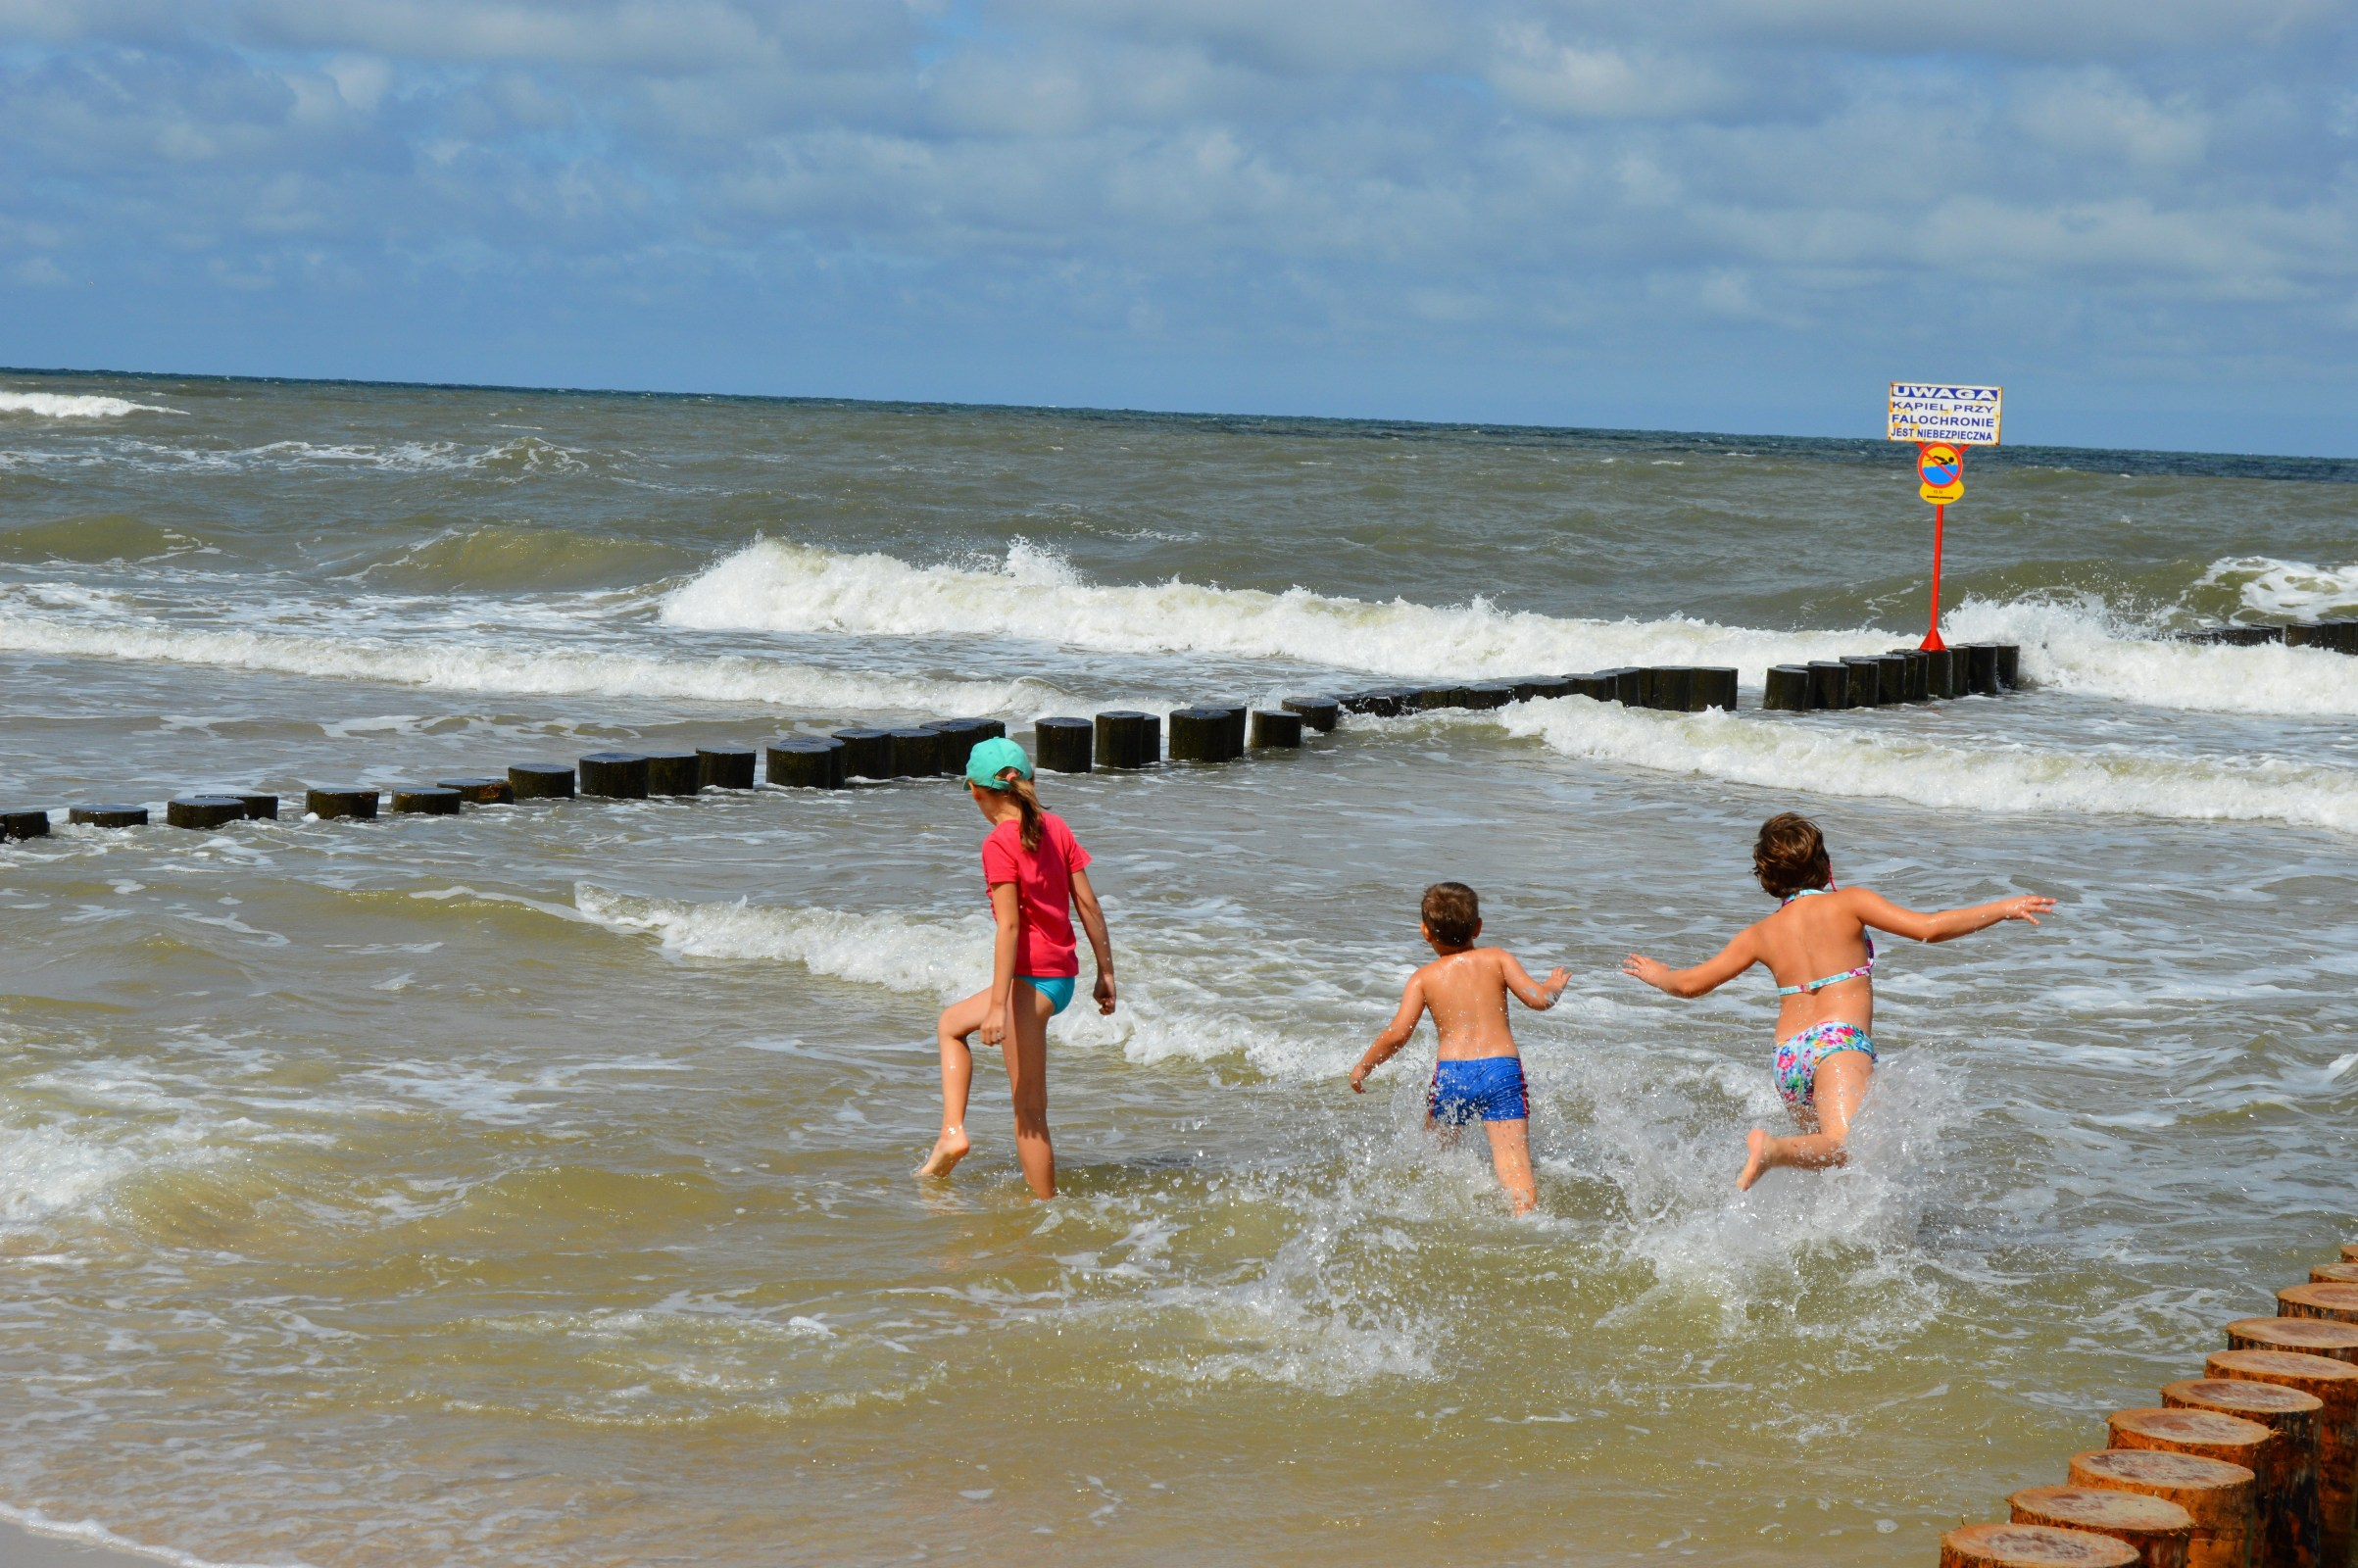 Children playing in a stormy sea near the breakwater. baltic sea photo